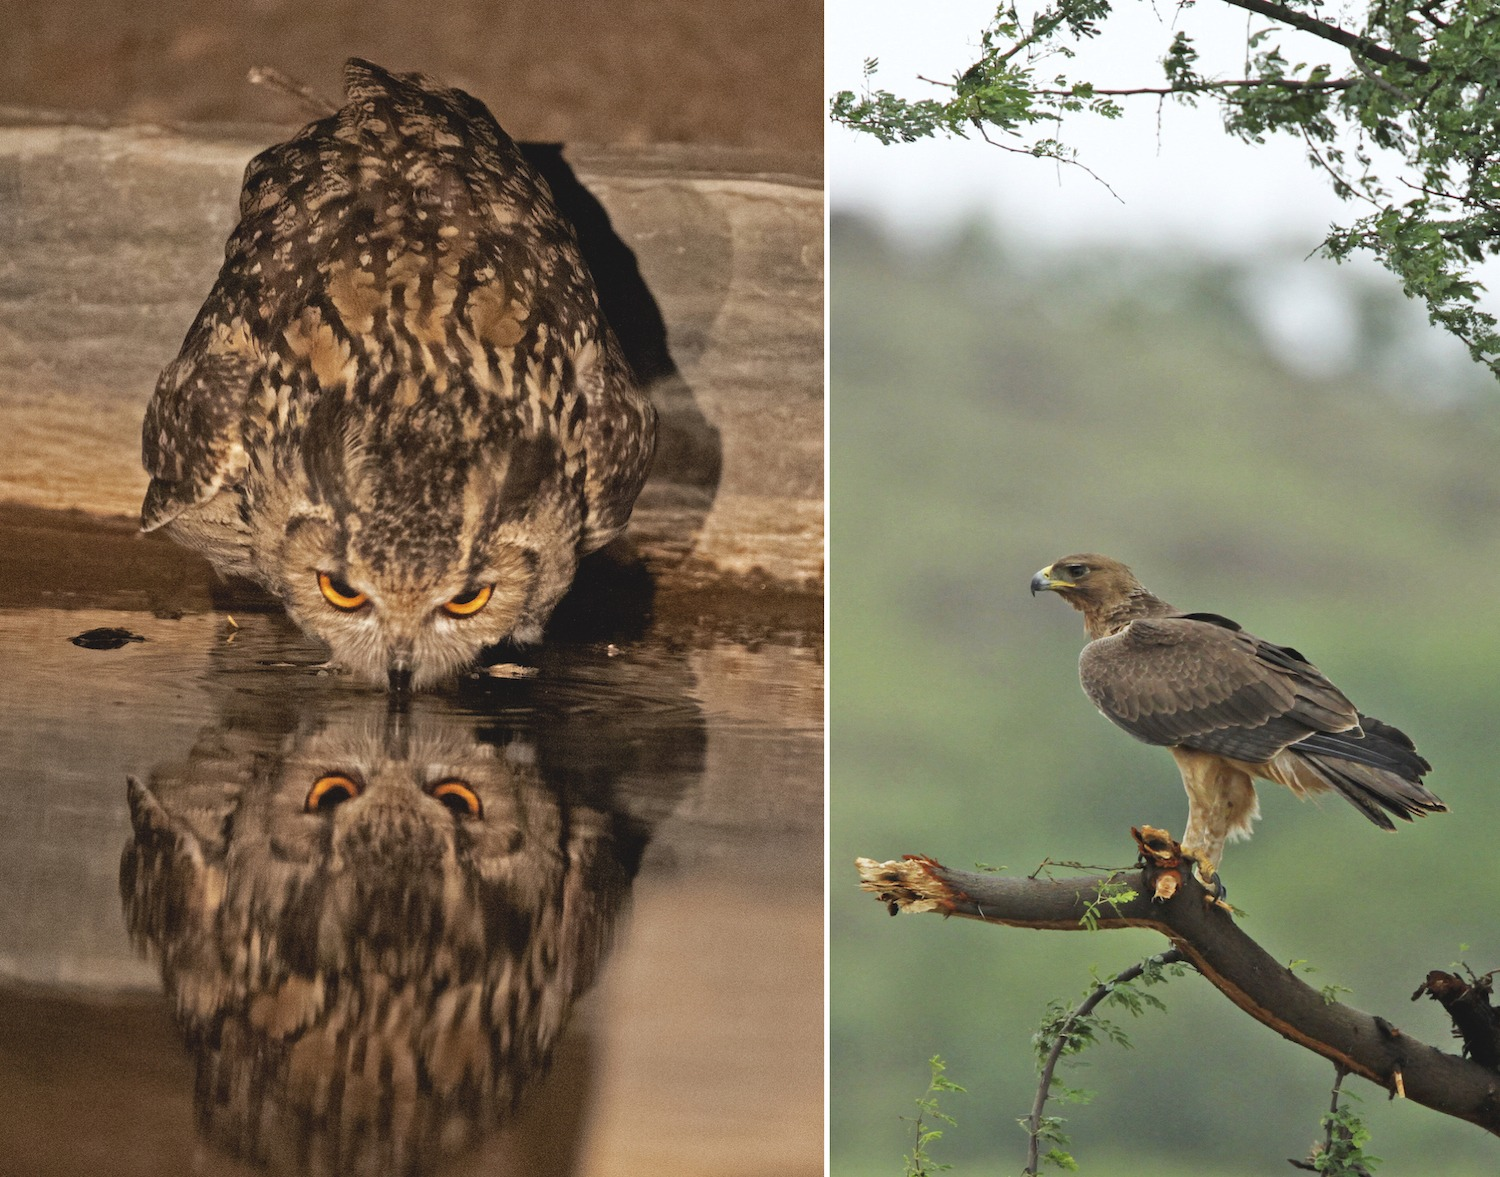 Among the fiercer of Saswad's inhabitants is the great horned owl (left) and Bonelli's eagle (right), both members of the raptor family that rely of hunting for nutrition.